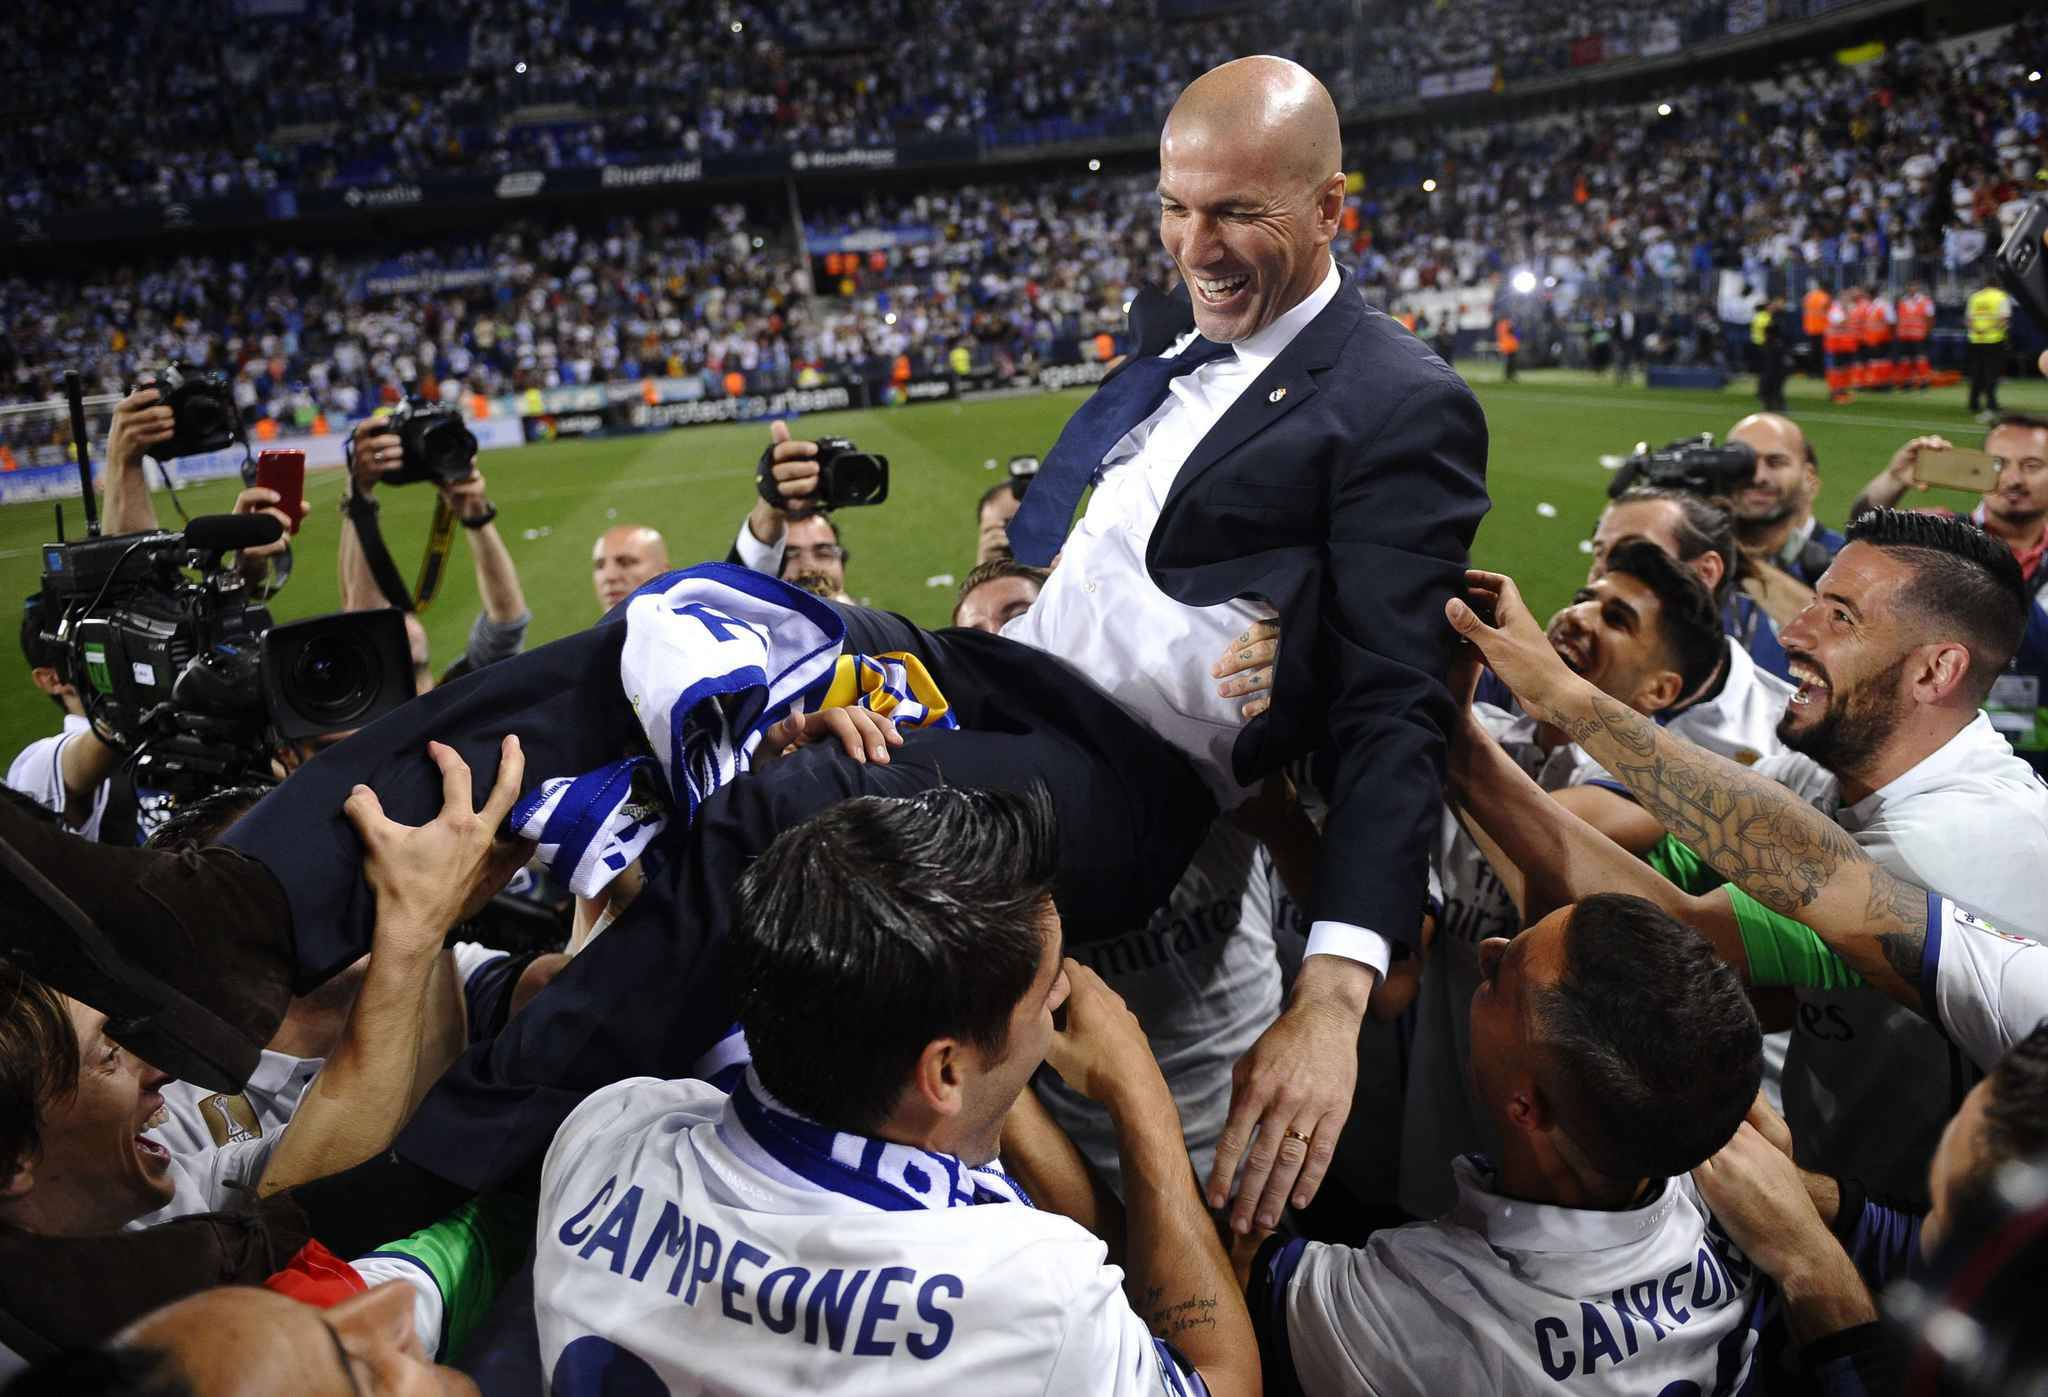 Real Madrid's head coach Zinedine Zidane is thrown into the air by his players after winning a Spanish La Liga soccer match between Malaga and Real Madrid in Malaga, Spain, Sunday, May 21, 2017. Real Madrid wins the Spanish league for the first time in five years, avoiding its biggest title drought since the 1980s. (AP Photo/Daniel Tejedor)/EM158/17141728598885/1705212222